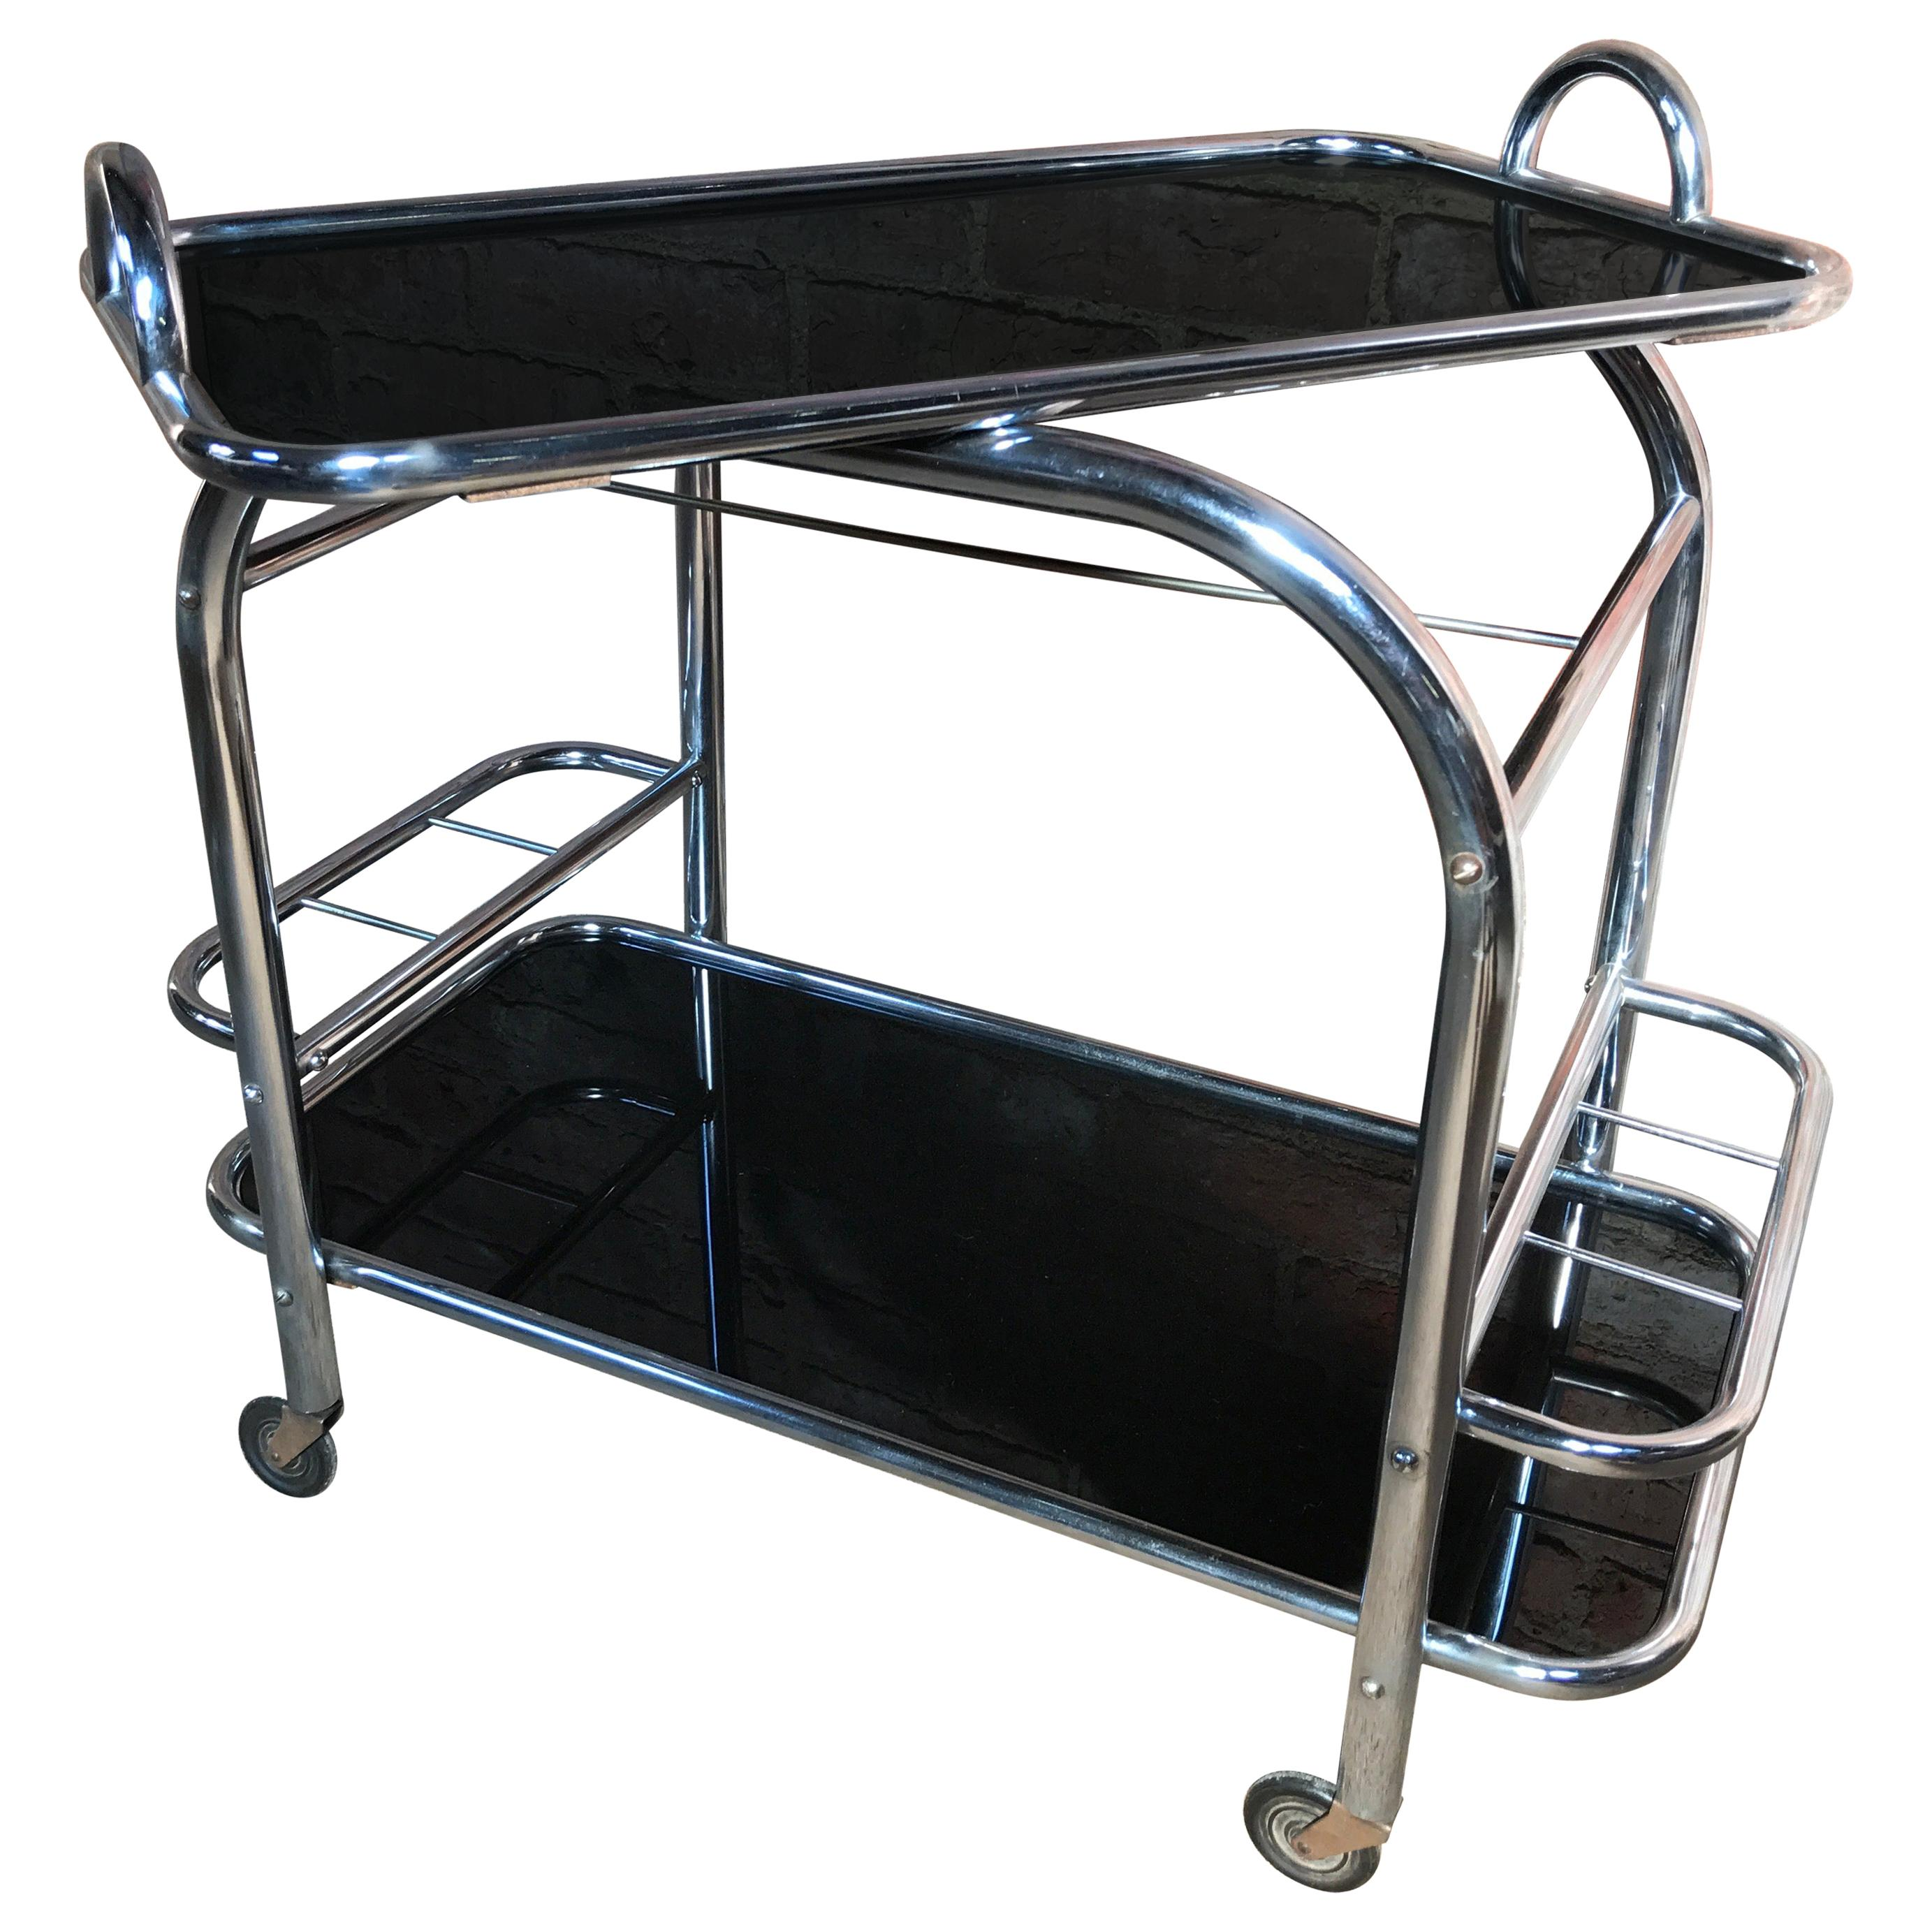 French Art Deco 1930 Drink Trolley Designed by Jacques Adnet